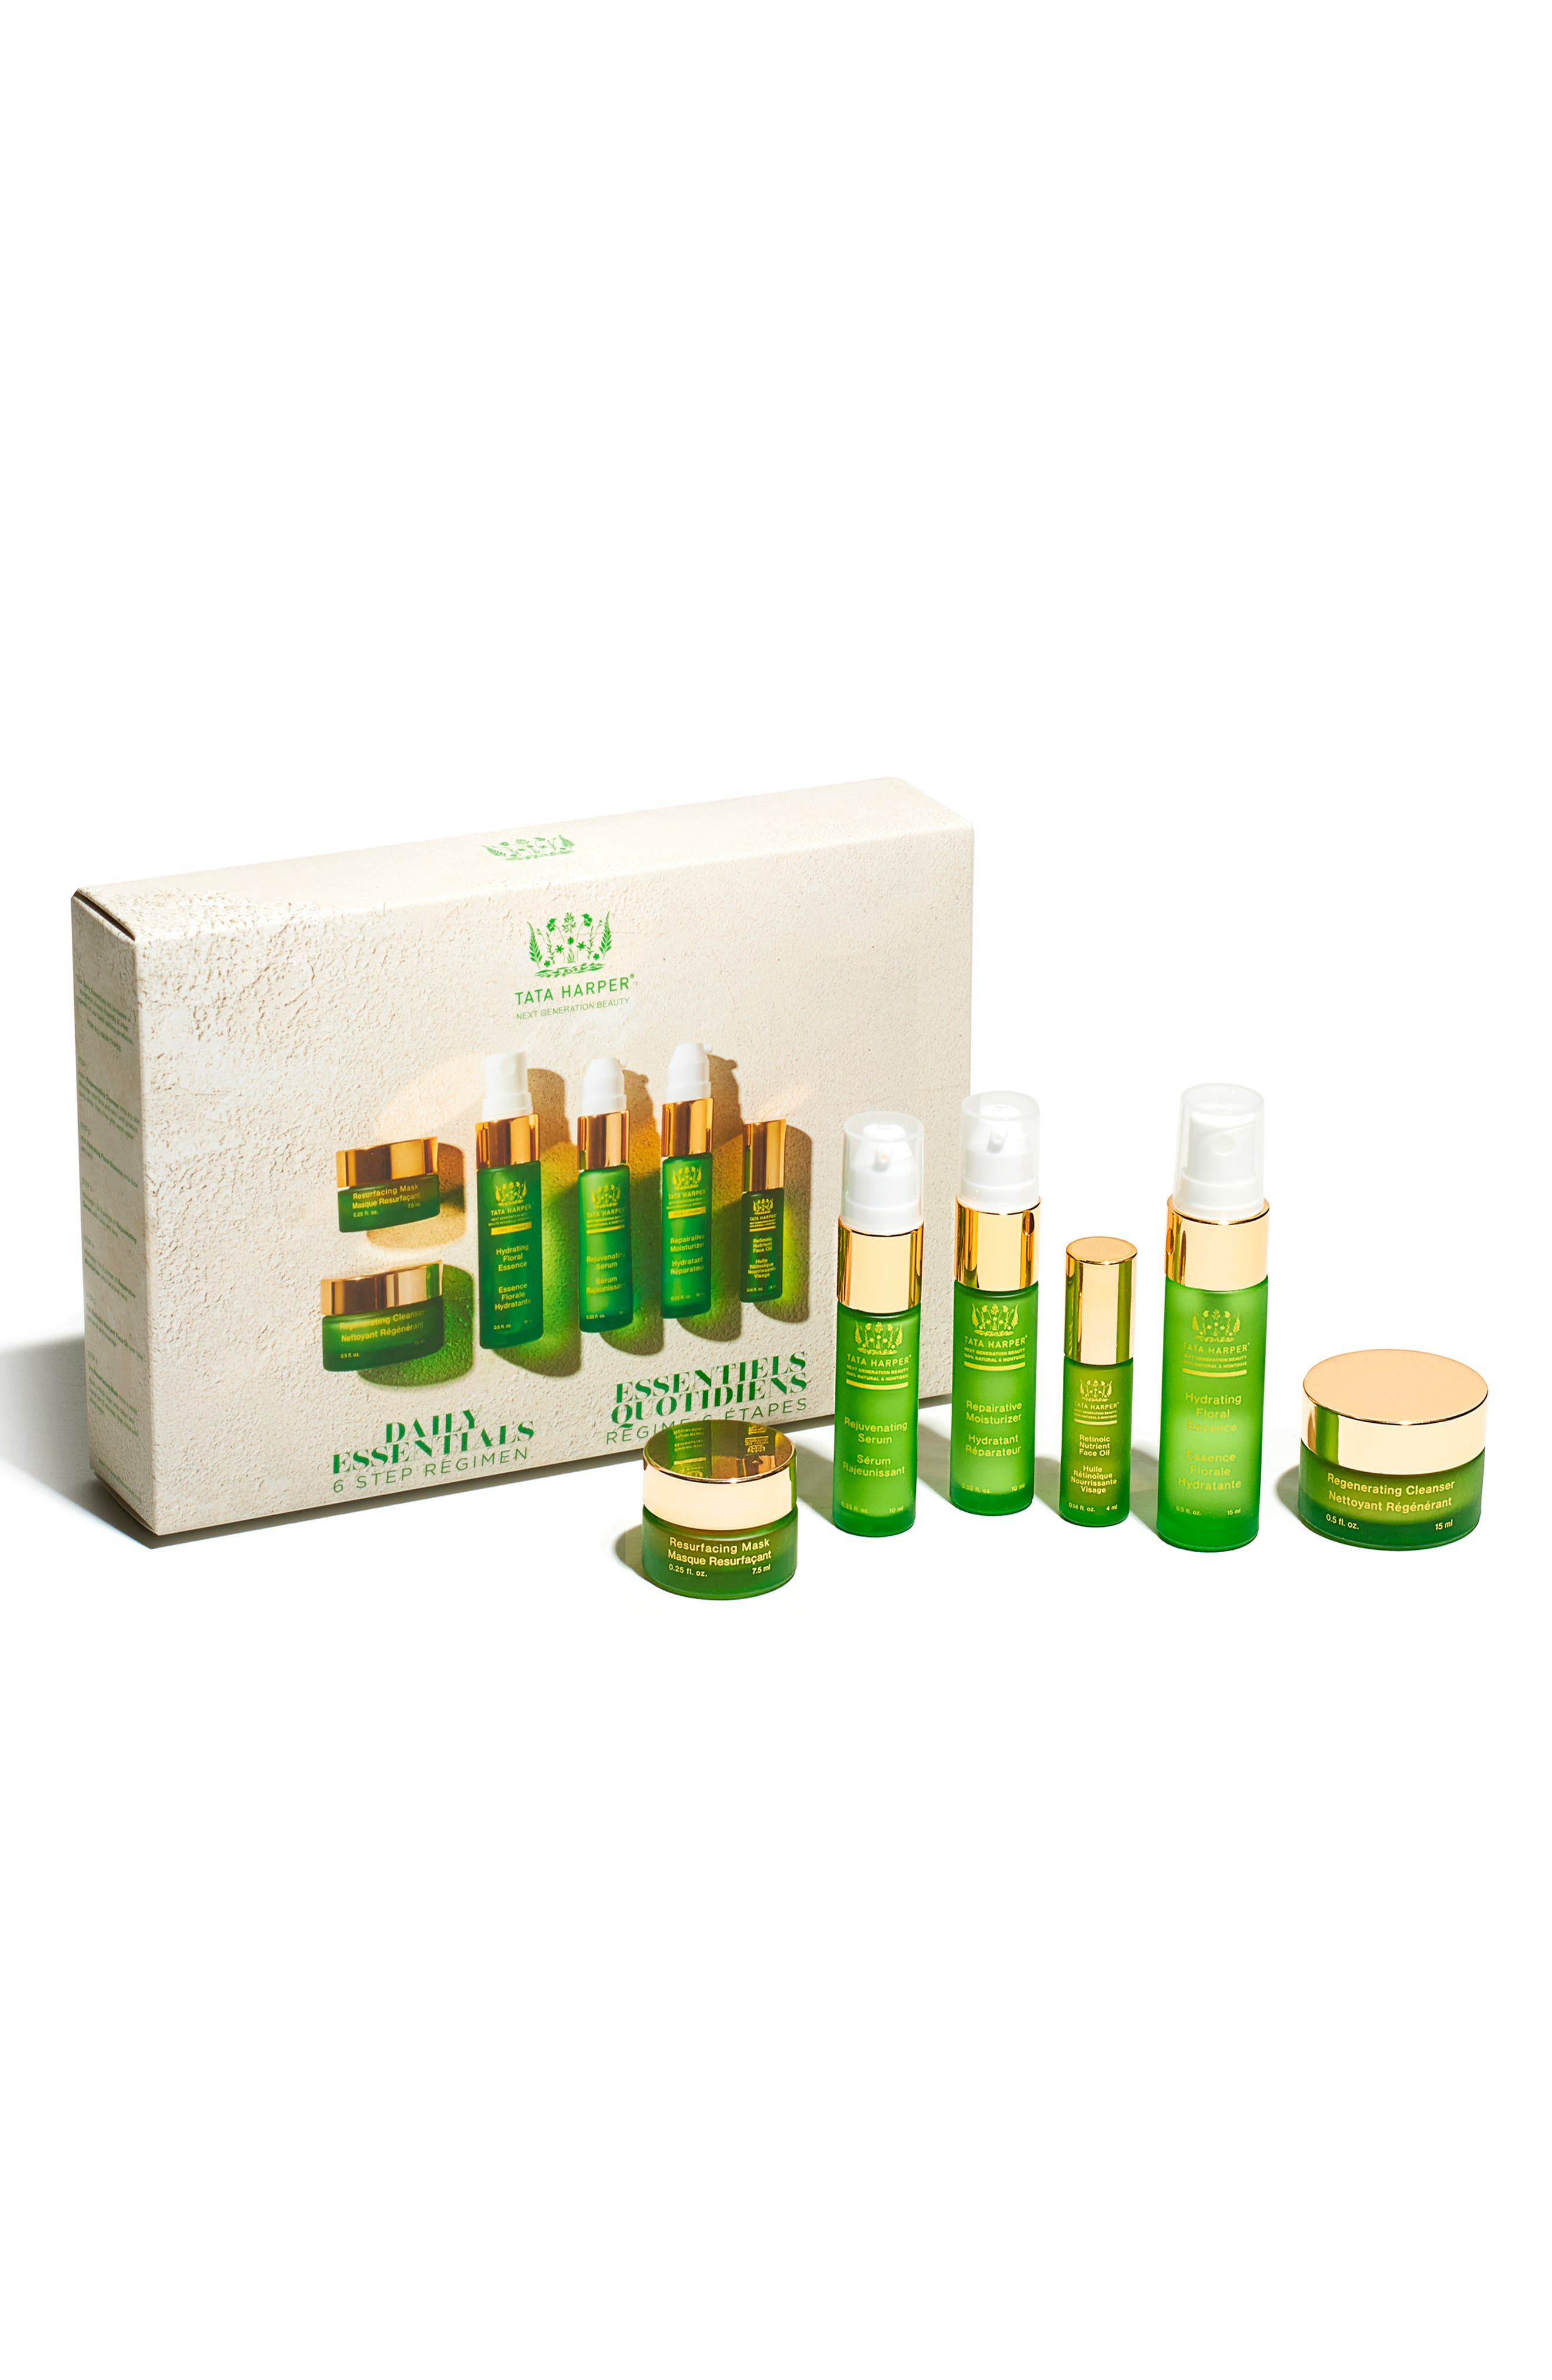 What it is: A complete, travel-friendly regimen with seven of Tata Harper\\\'s all-time green beauty bestsellers. Set includes:- Repairative Moisturizer (0.34 oz.): an ultra-hydrating formula ideal for those with dehydrated skin during the winter months or in dry climates- Rejuvenating Serum (0.34 oz.): an award-winning serum is formulated to visibly minimize the signs of aging, to reduce the appearance of fine lines and wrinkles while restoring